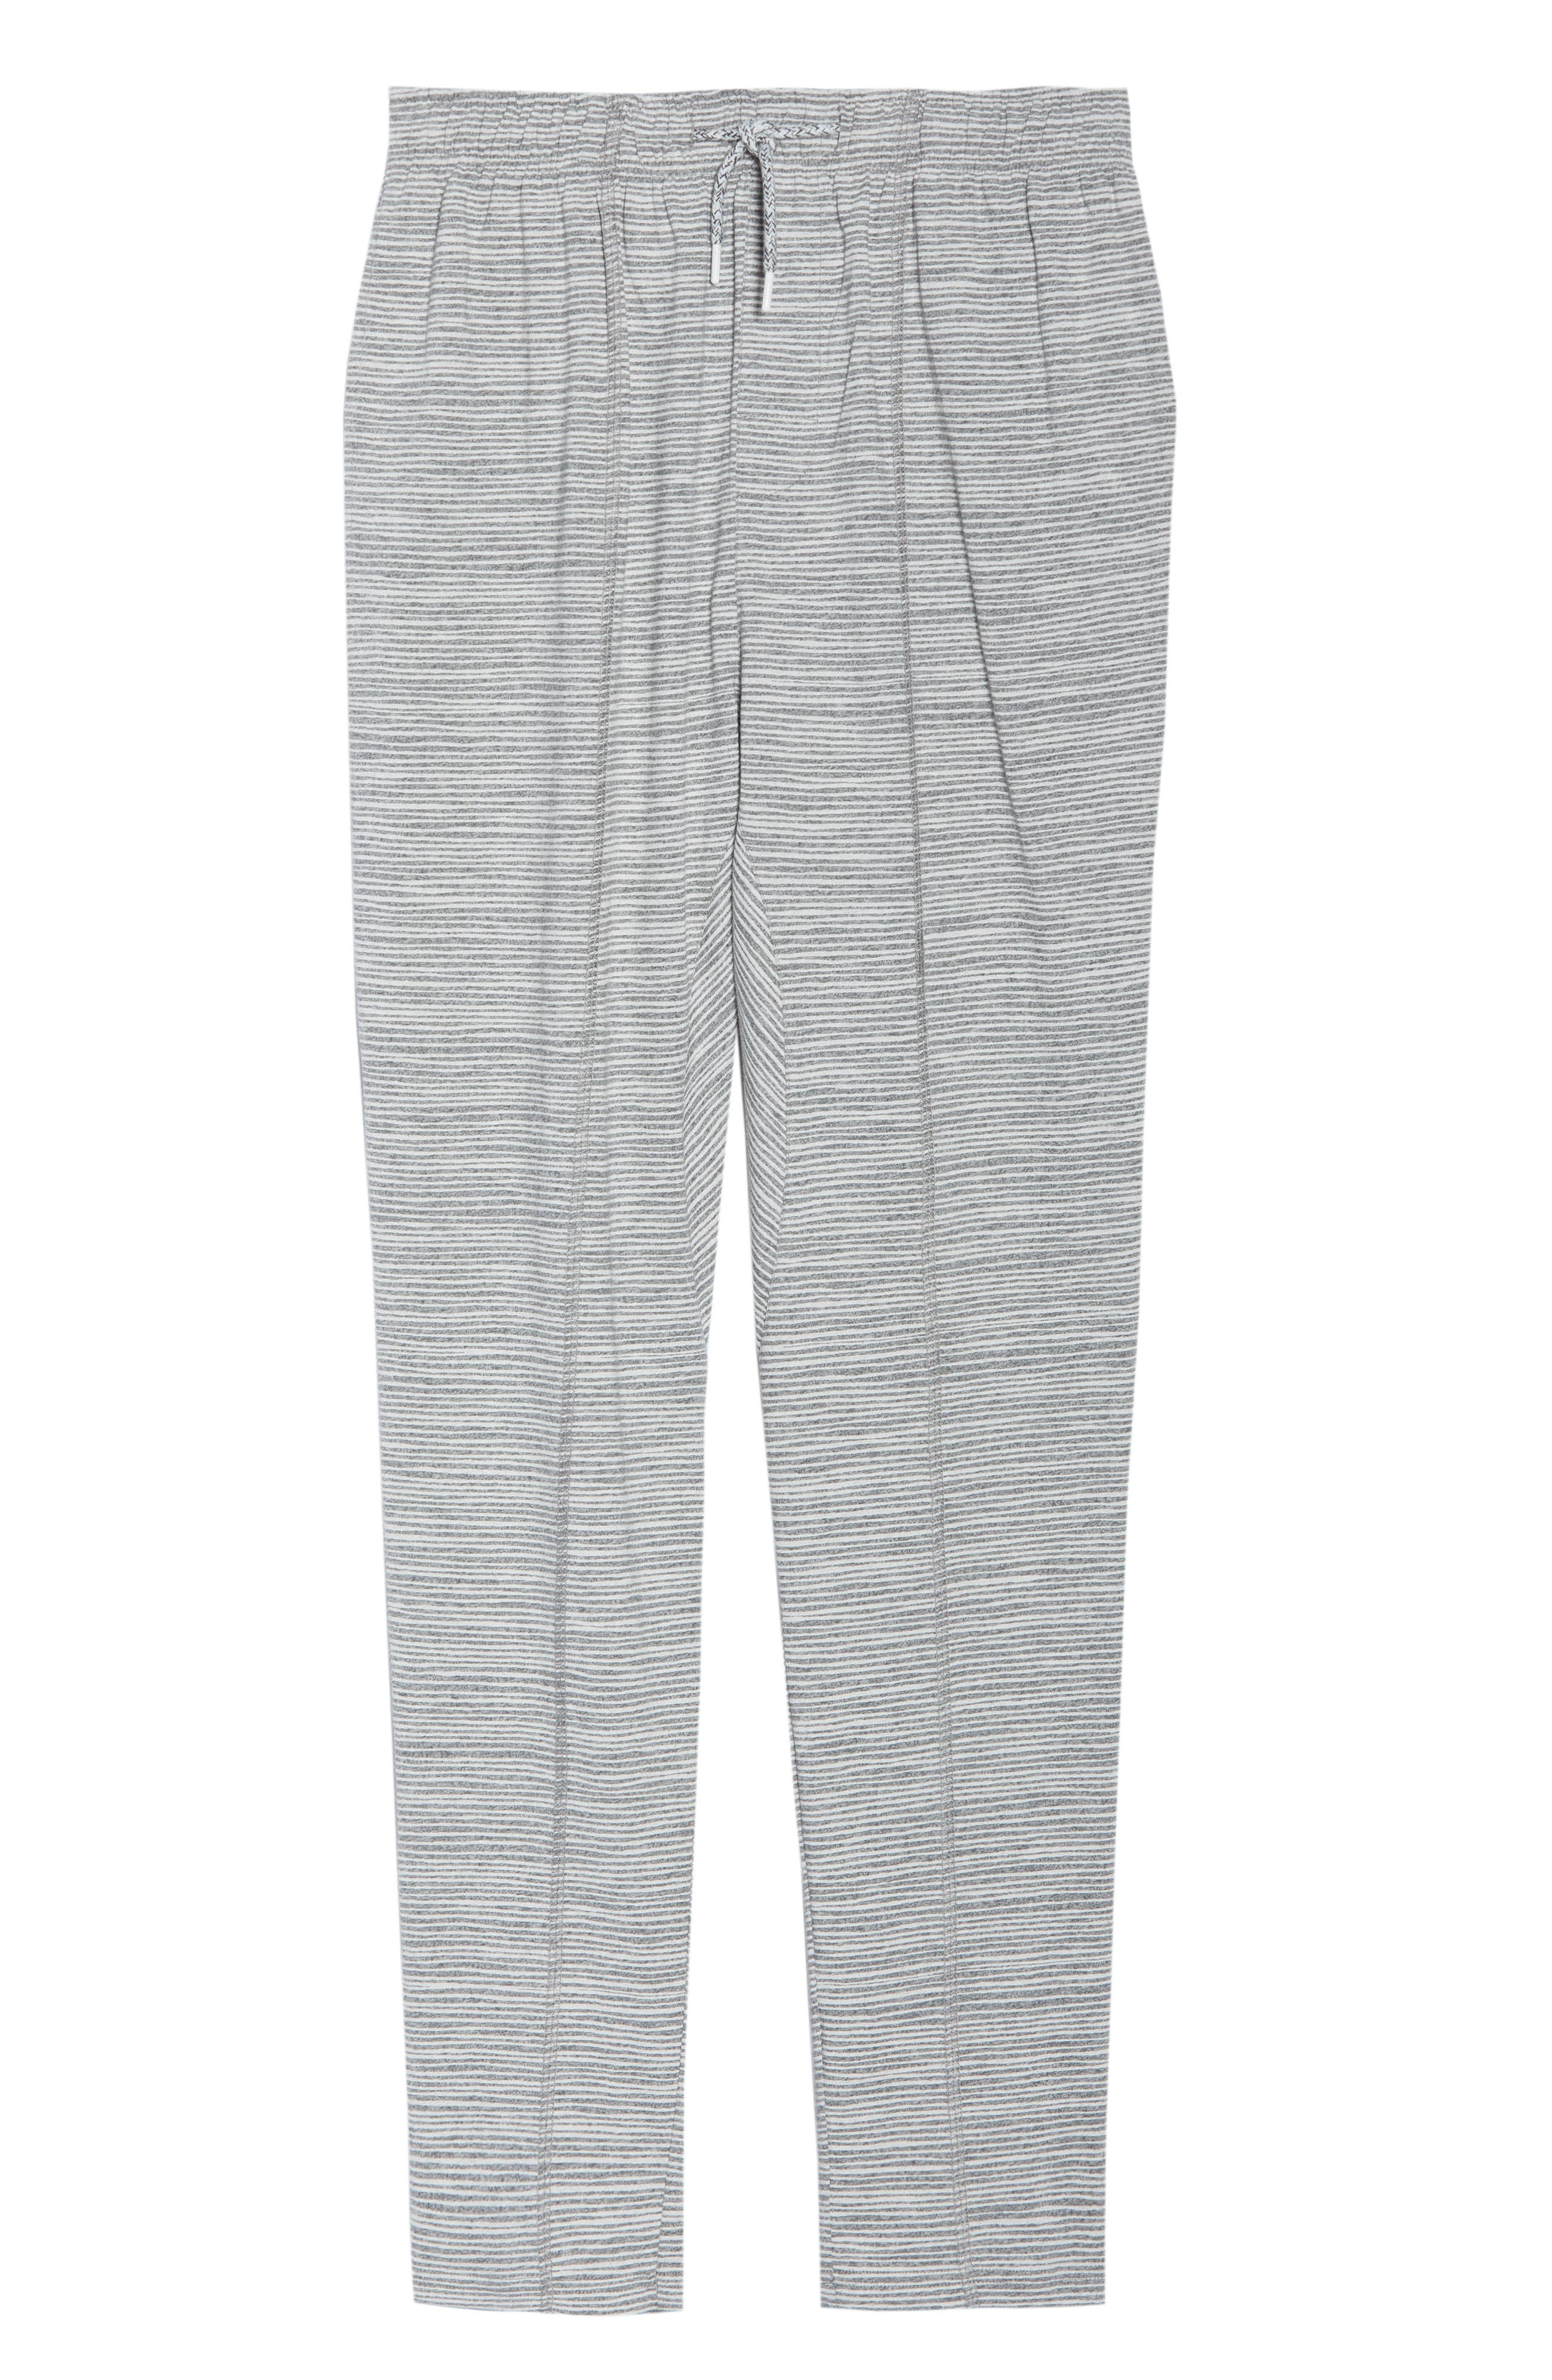 Ash Stripe Lounge Pants,                             Alternate thumbnail 4, color,                             Ash Marle Stripe